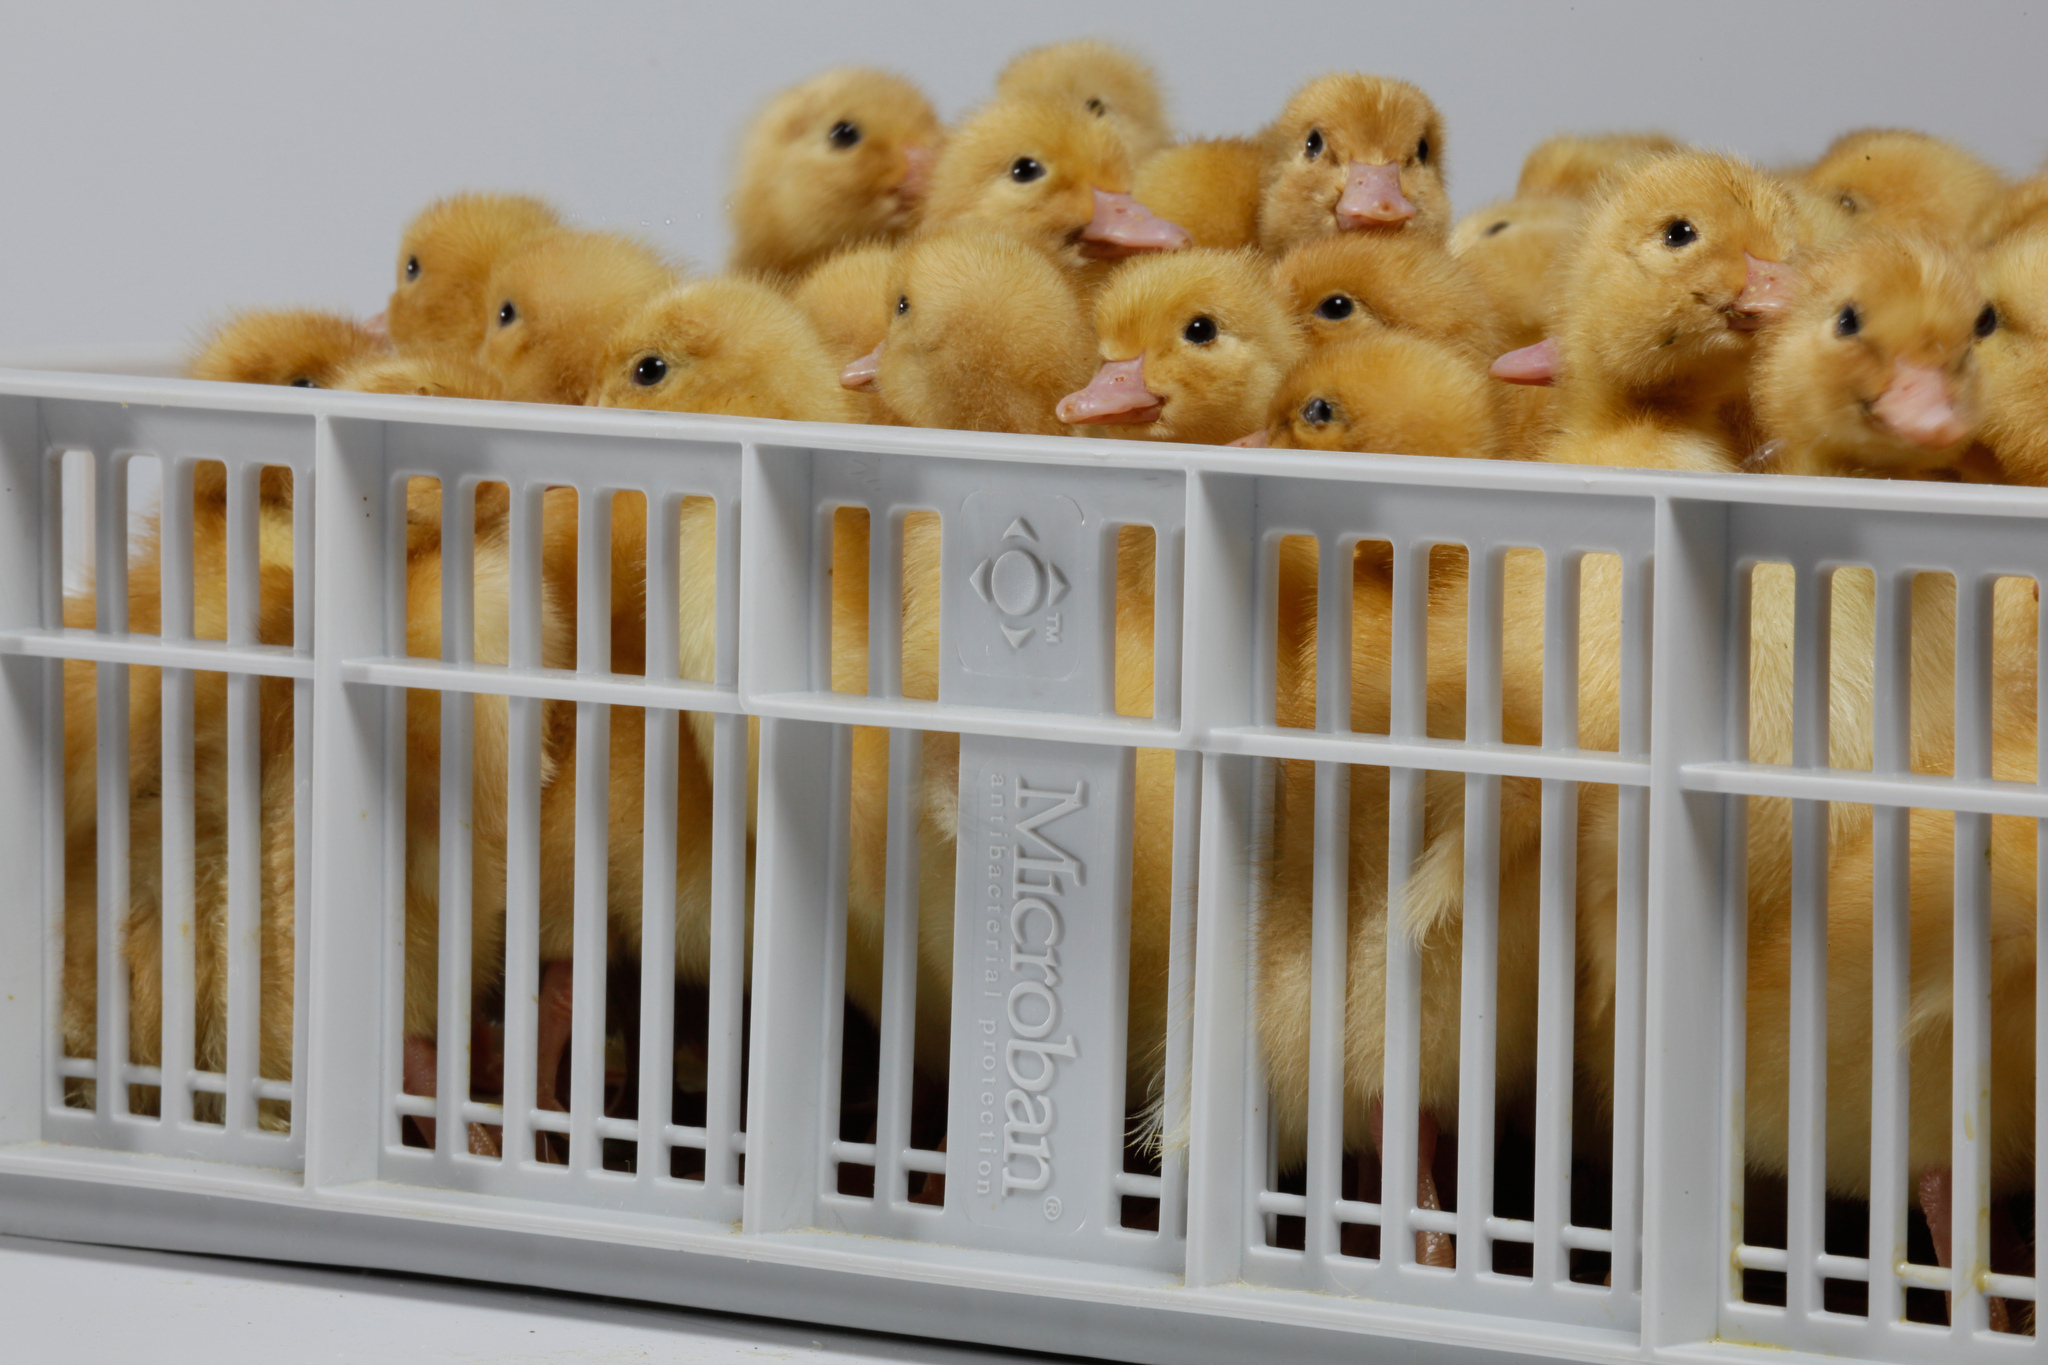 Microban Pas Reform Poultry Industry Egg Safety Hatchery Equipment Hatching Basket Egg Incubation